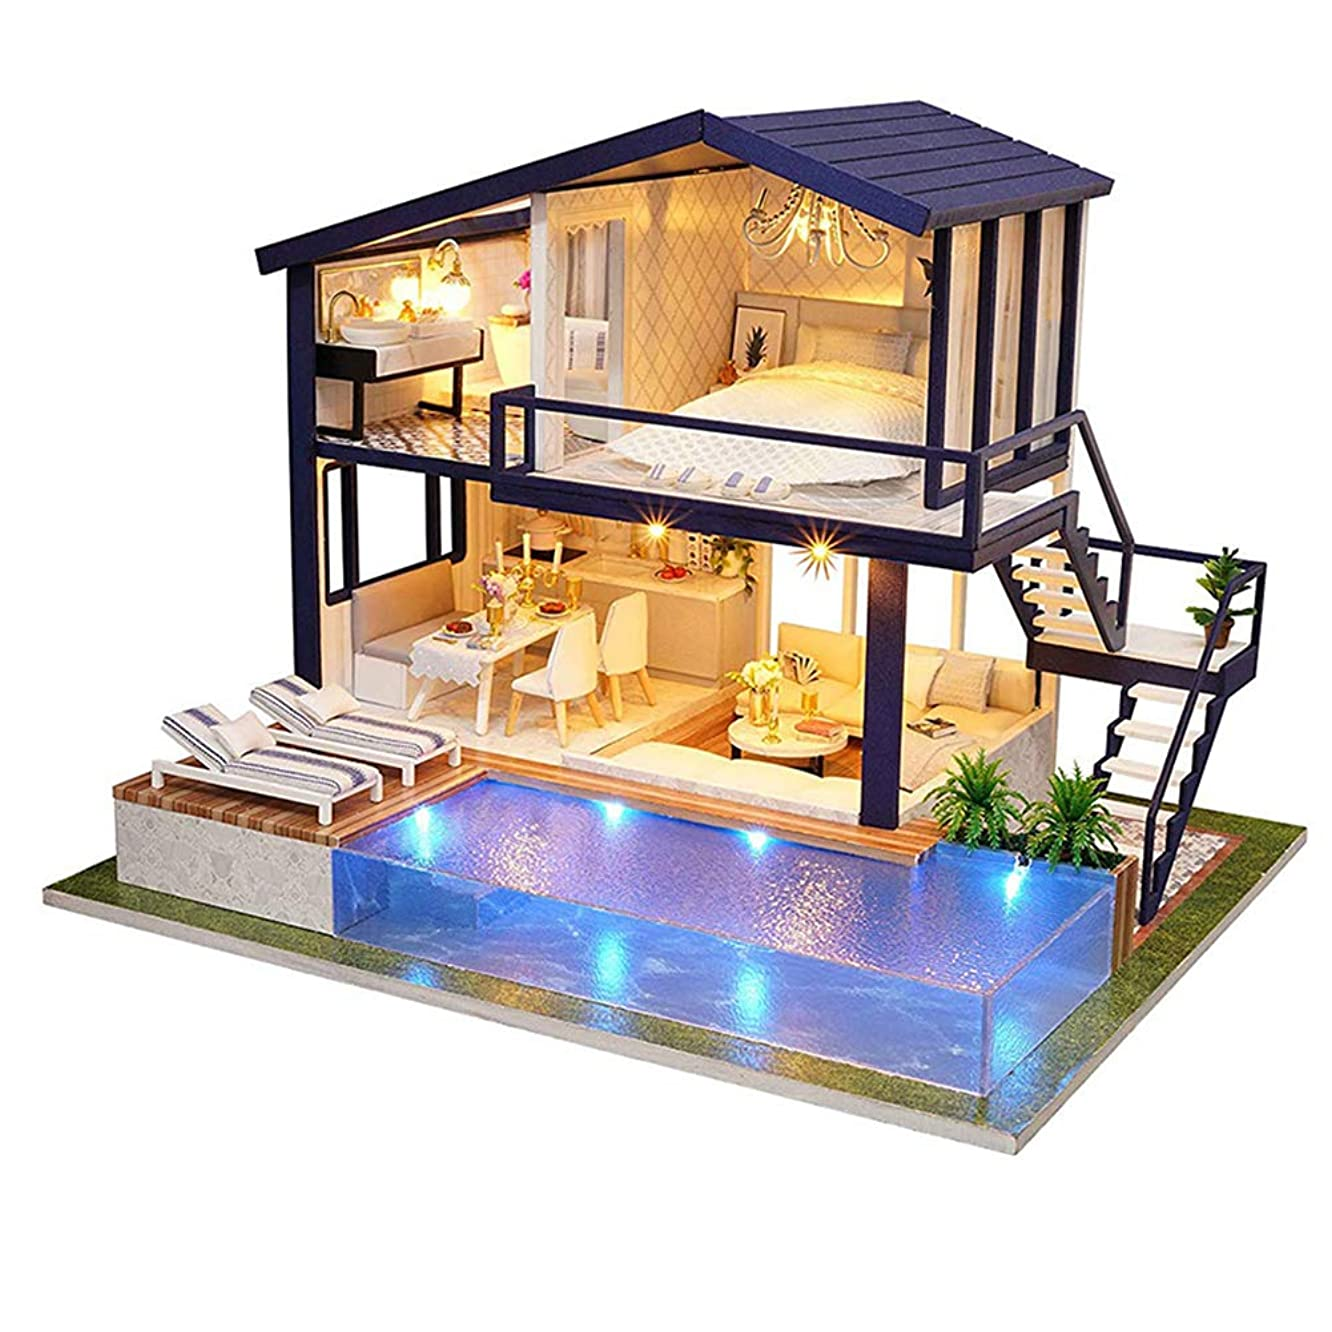 xxiaoTHAWxe DIY Dollhouse Toy, DIY Miniature Dollhouse Furniture Swimming Pool Building Villa Model Kids Toy Learning Development for Children Kids Boys and Girls